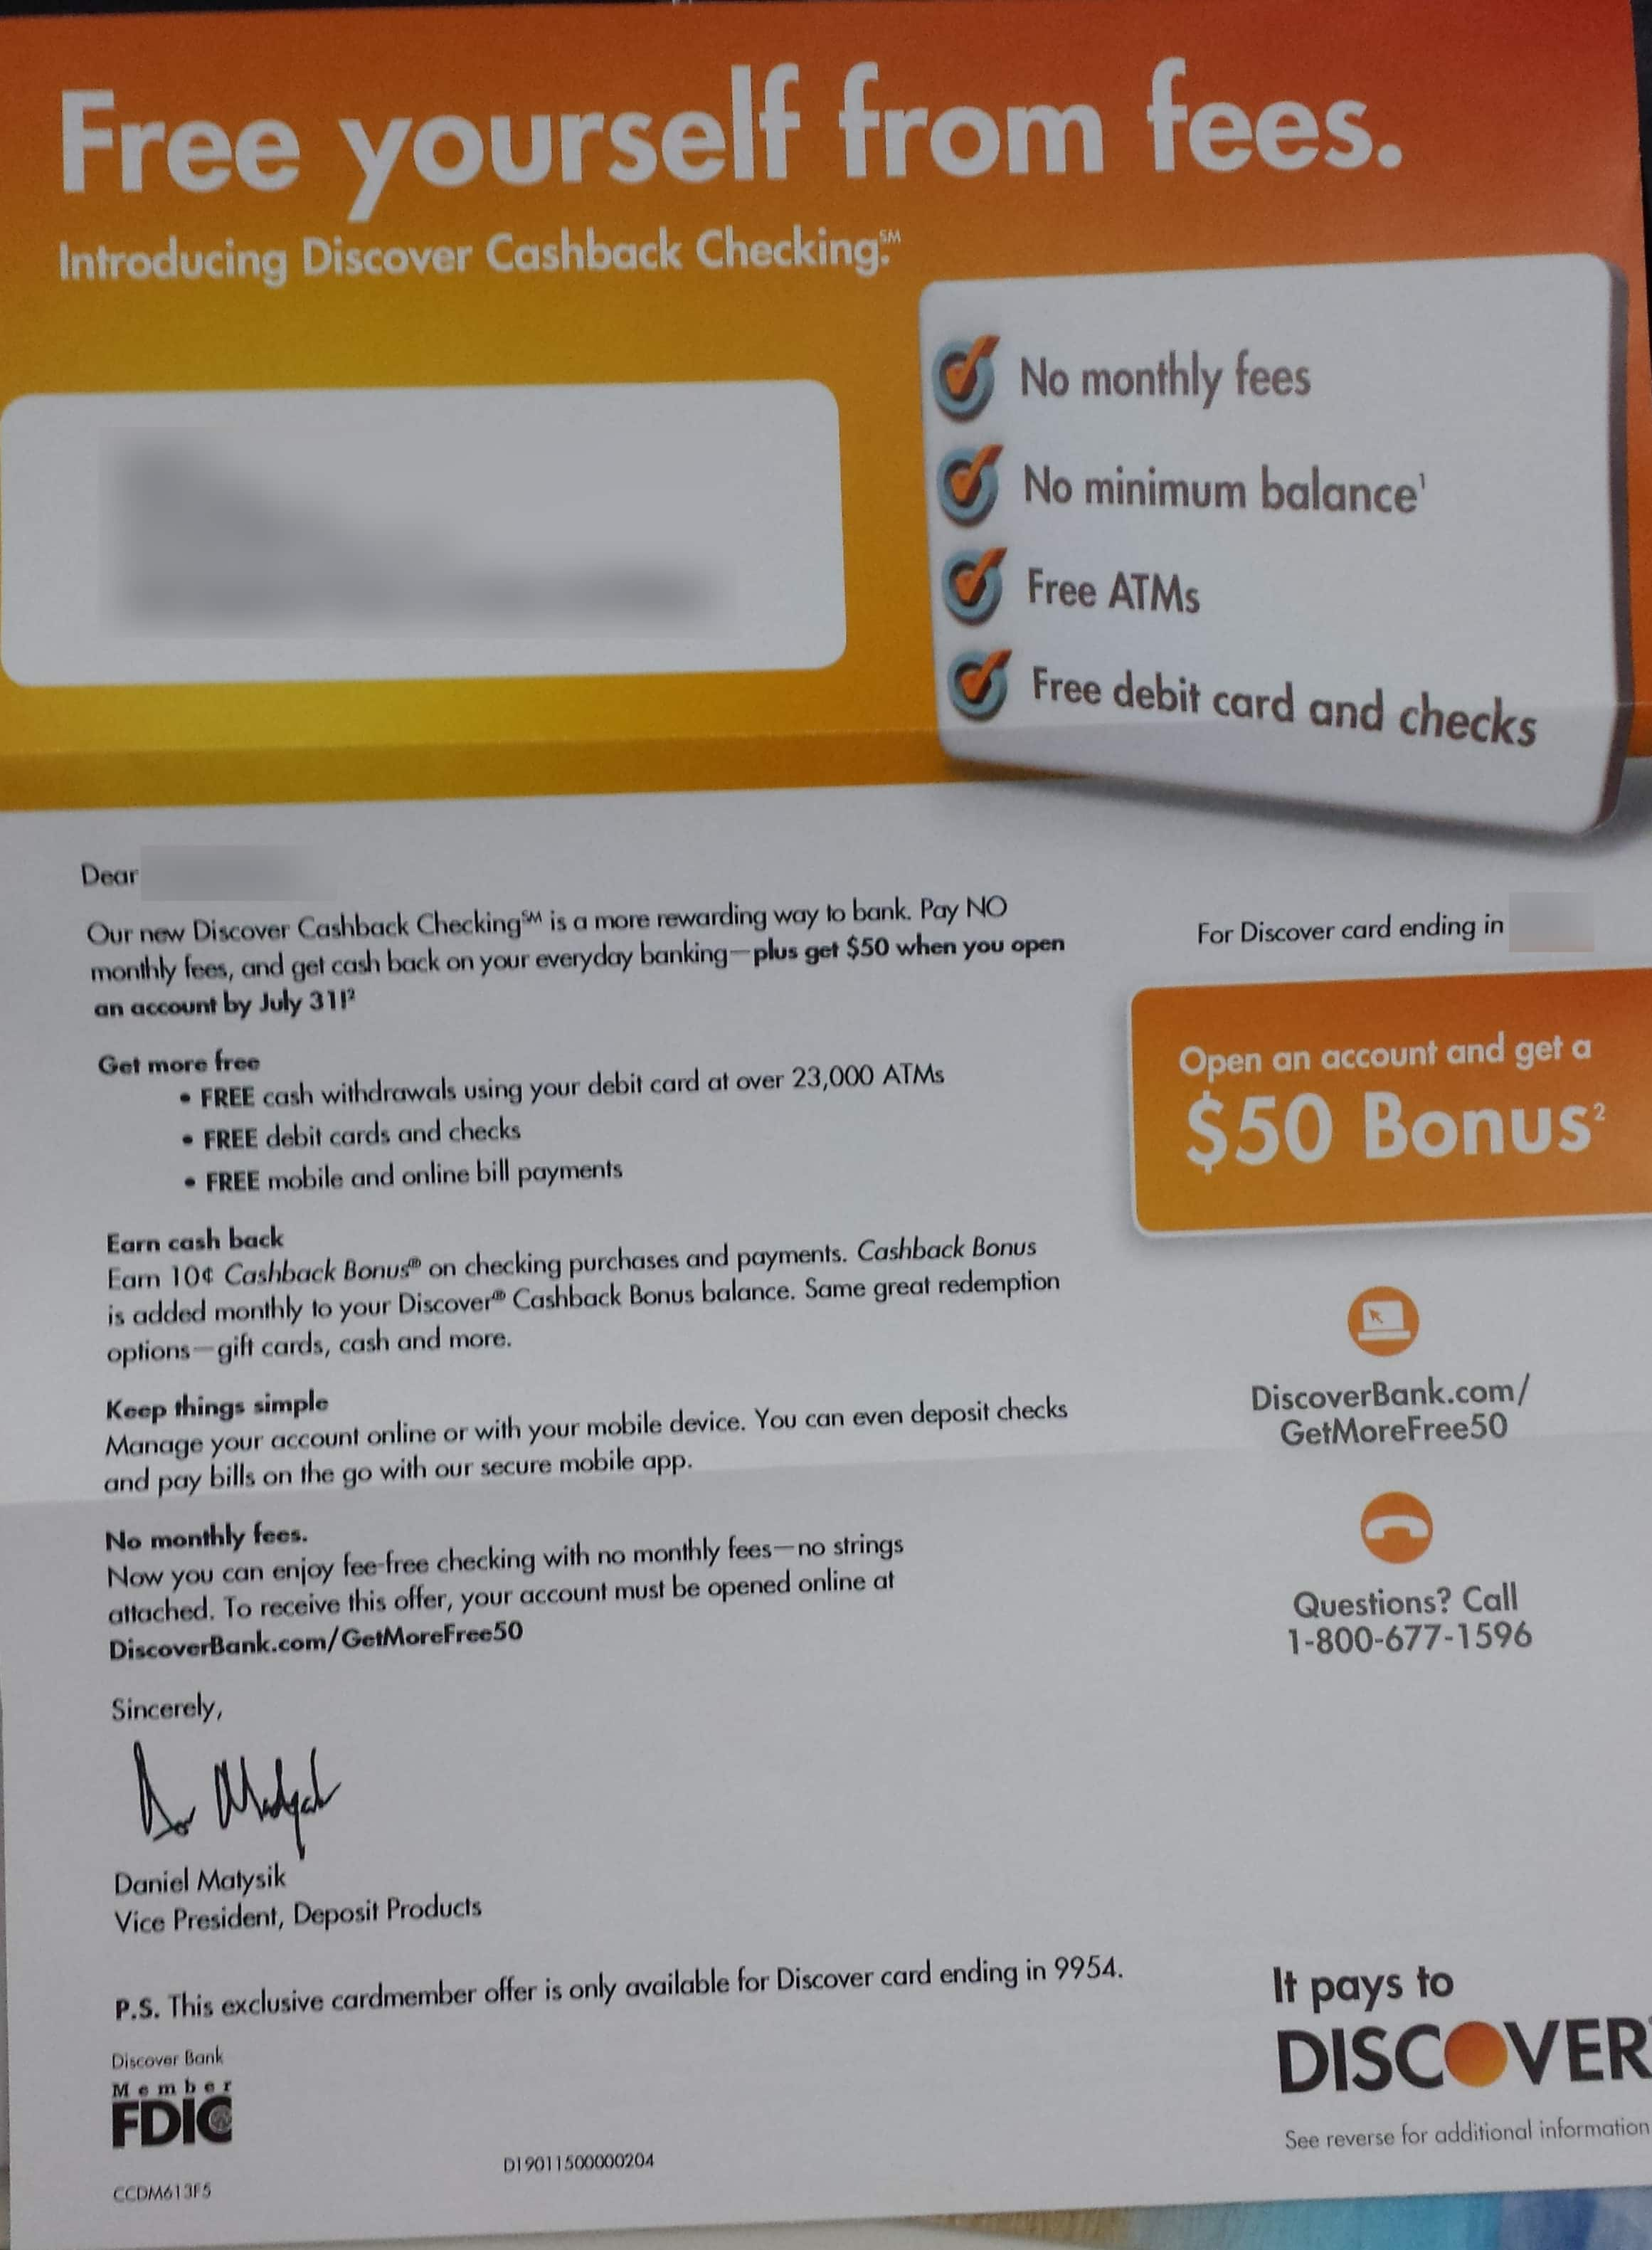 $50 bonus for new Discover Cashback checking account *For Discover Card Member Only*